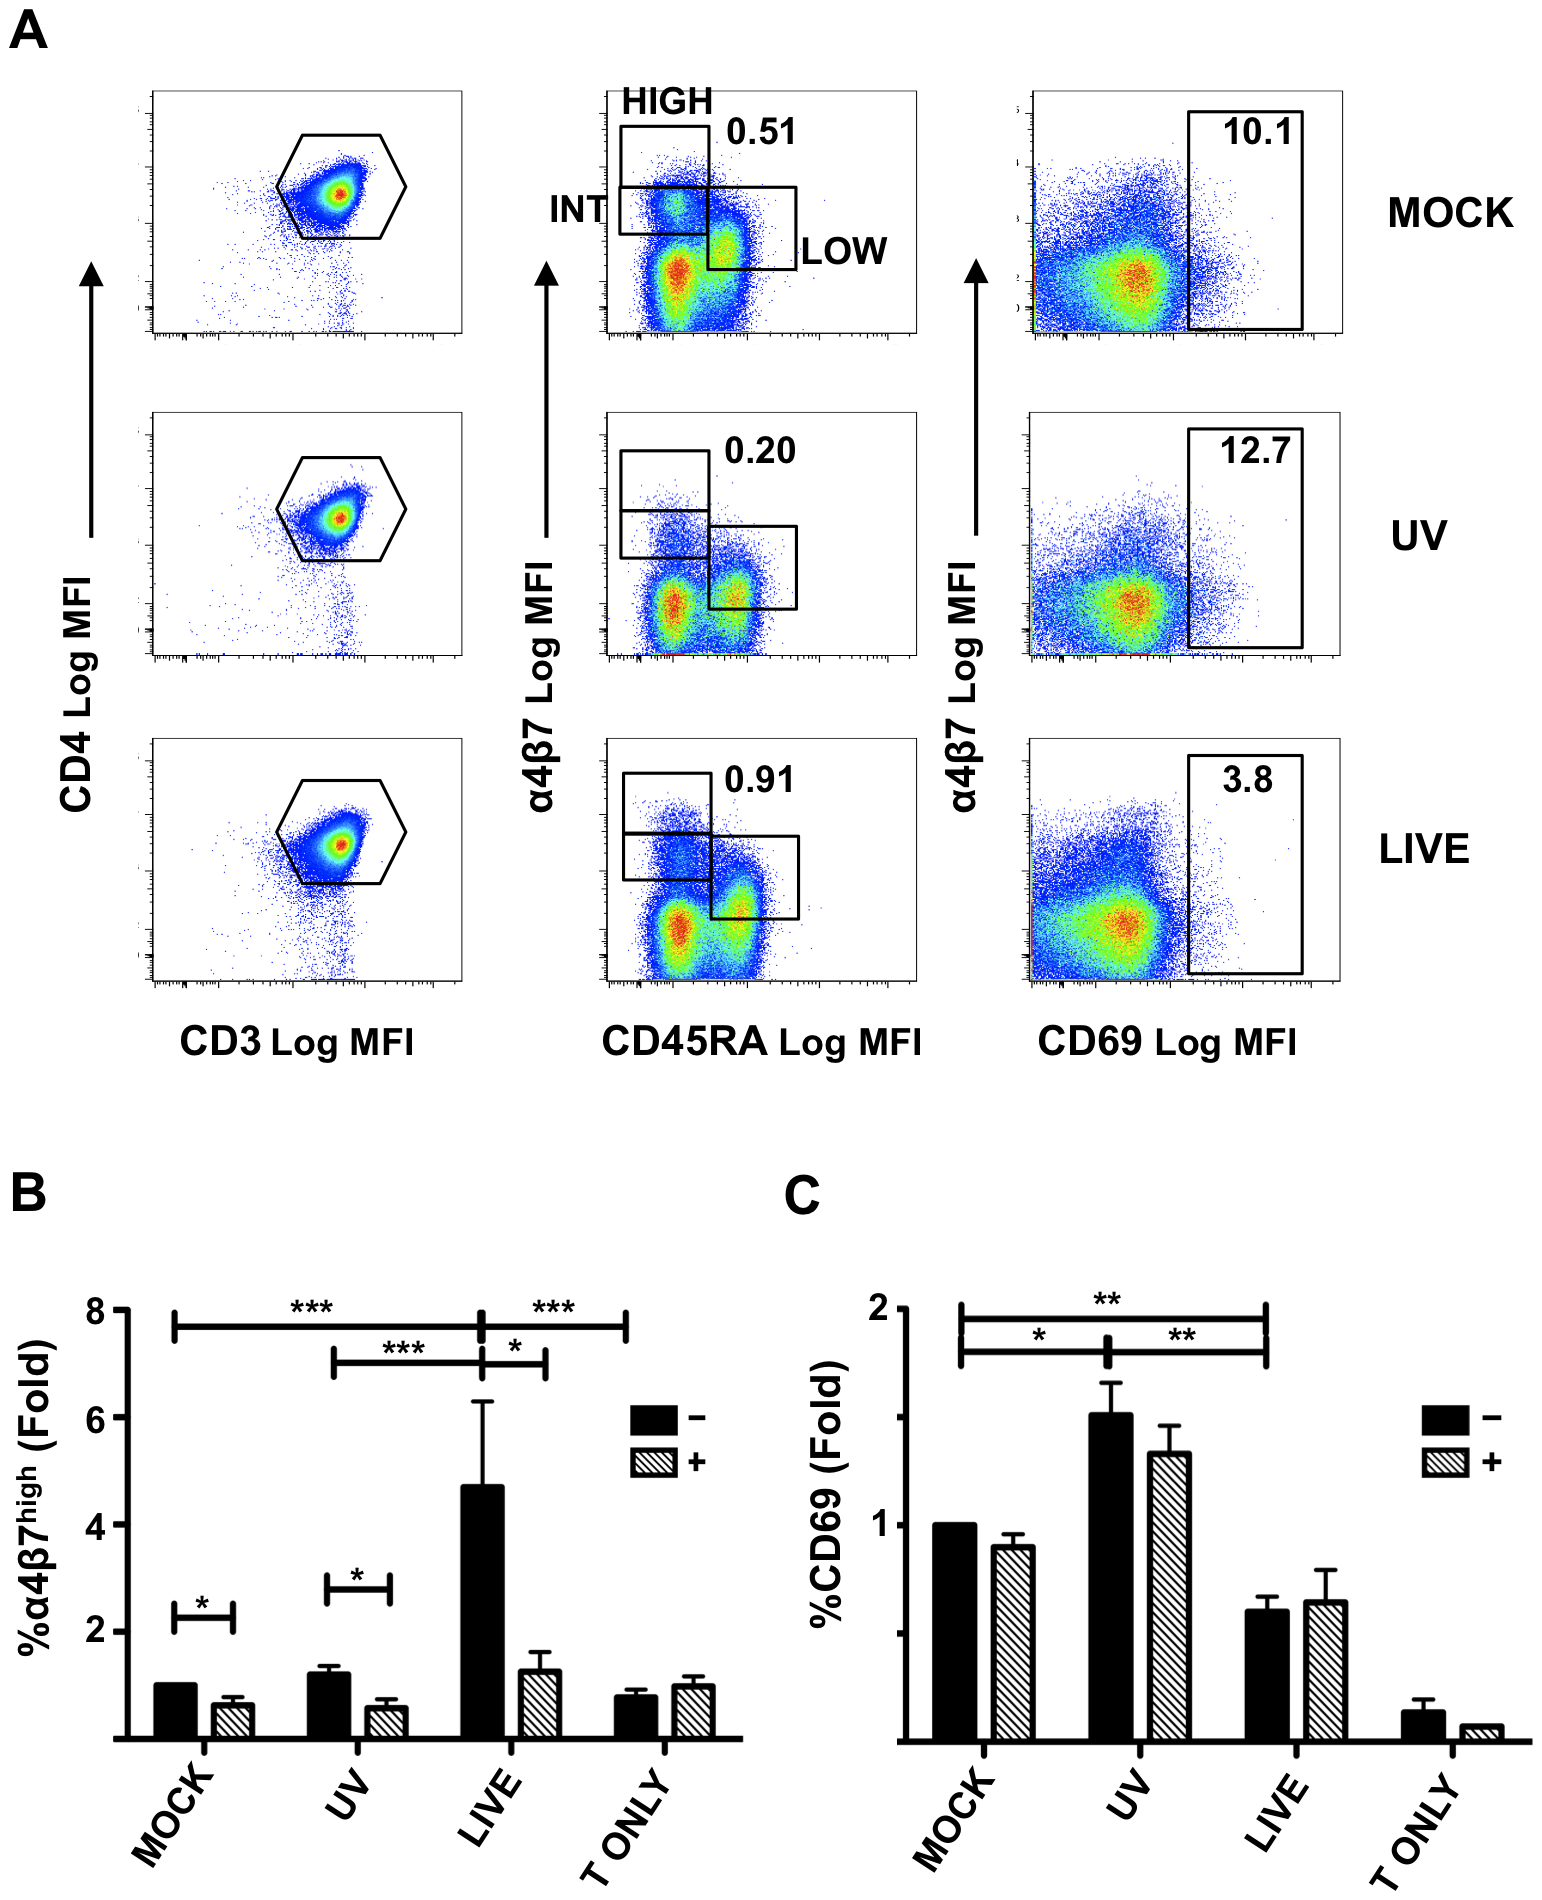 HSV-2 infection of moDCs induces α<sub>4</sub>β<sub>7</sub> on CD4<sup>+</sup> T cells.